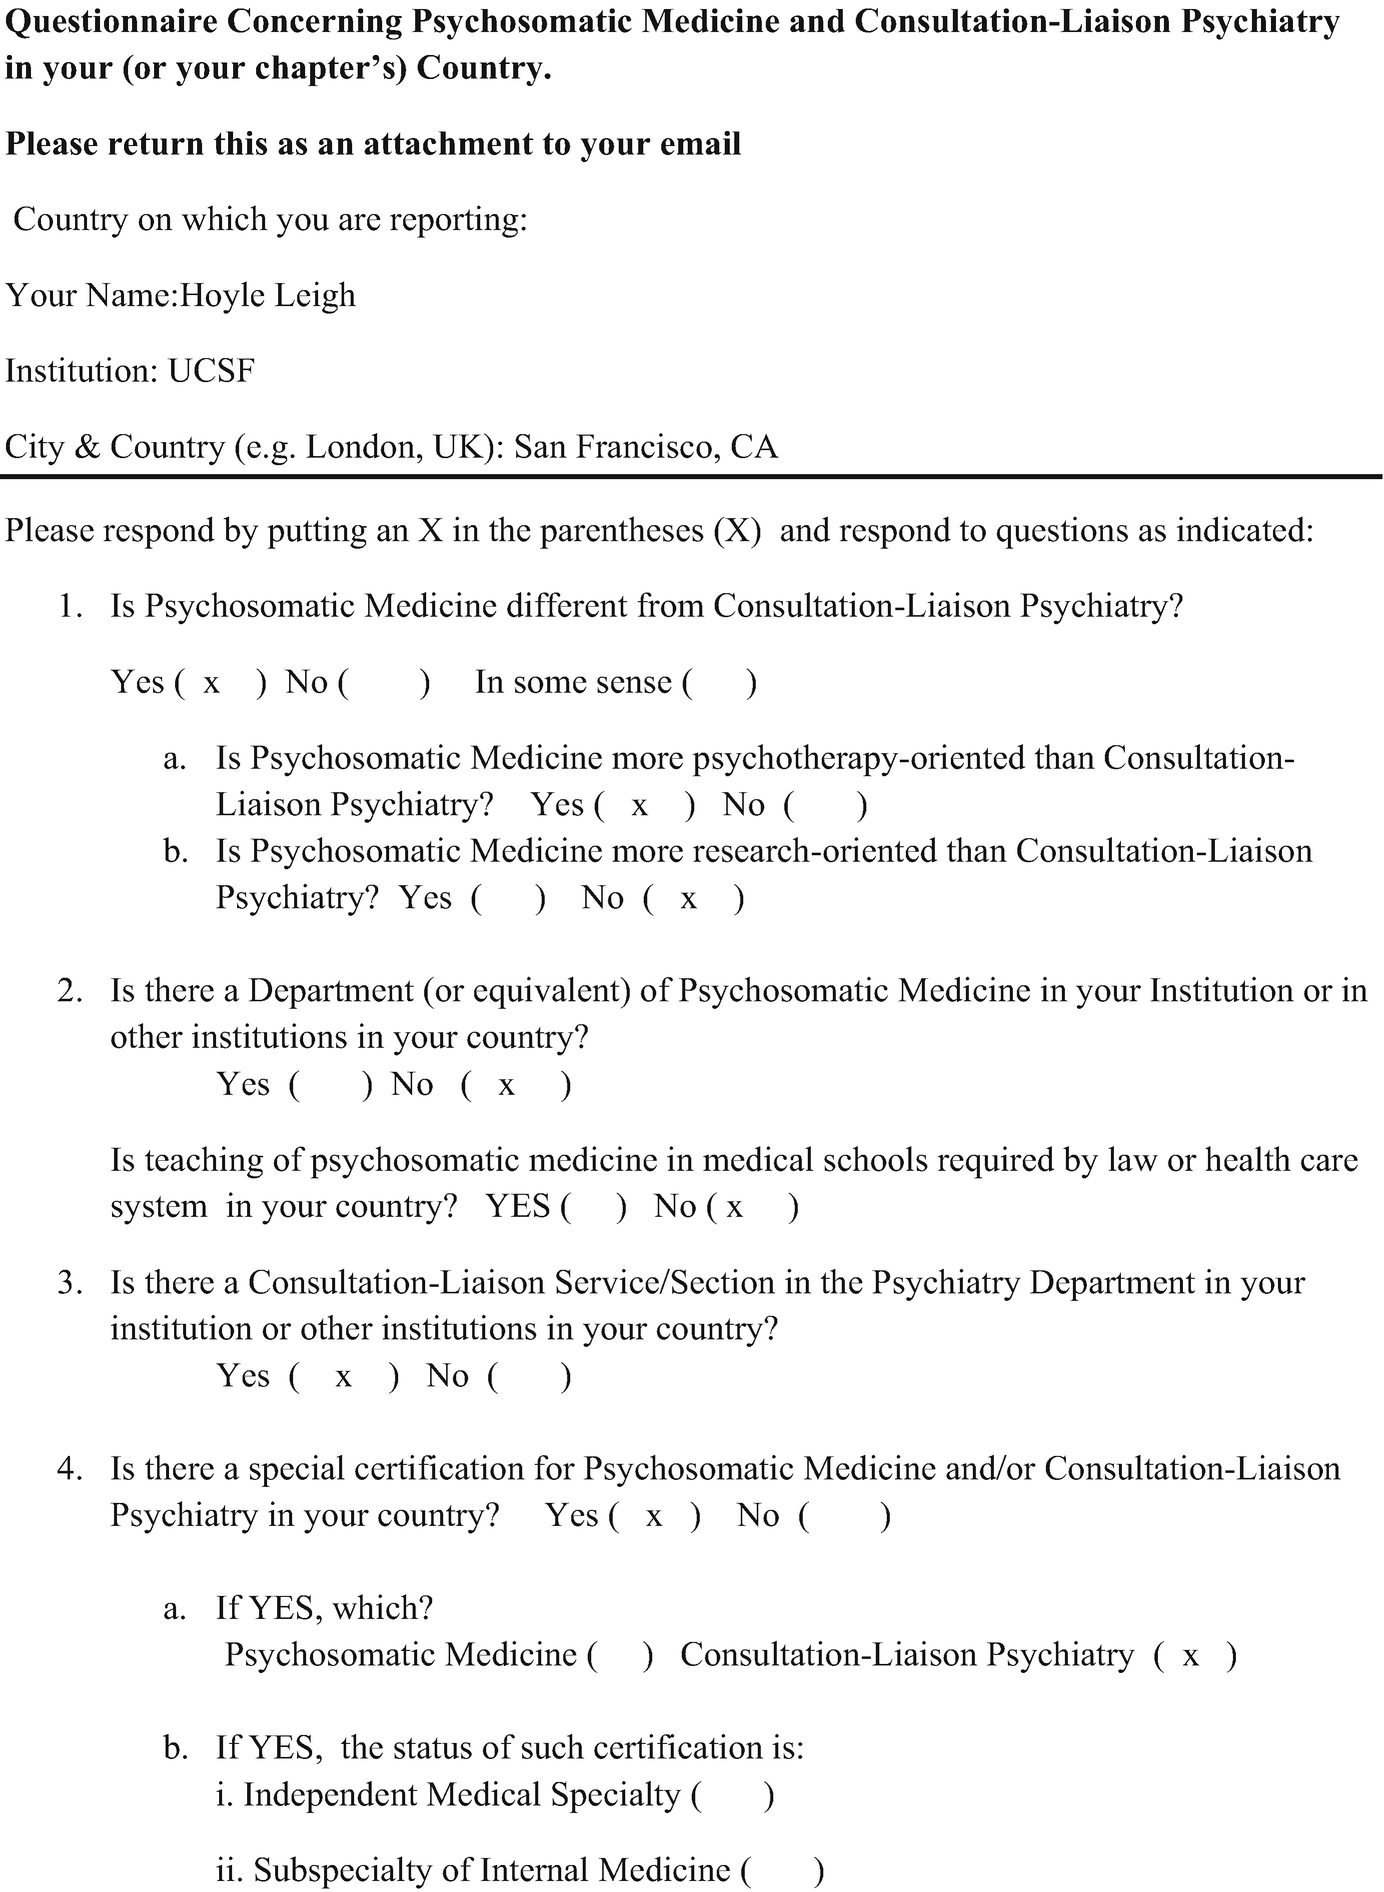 Psychosomatic Medicine and Consultation-Liaison Psychiatry in the